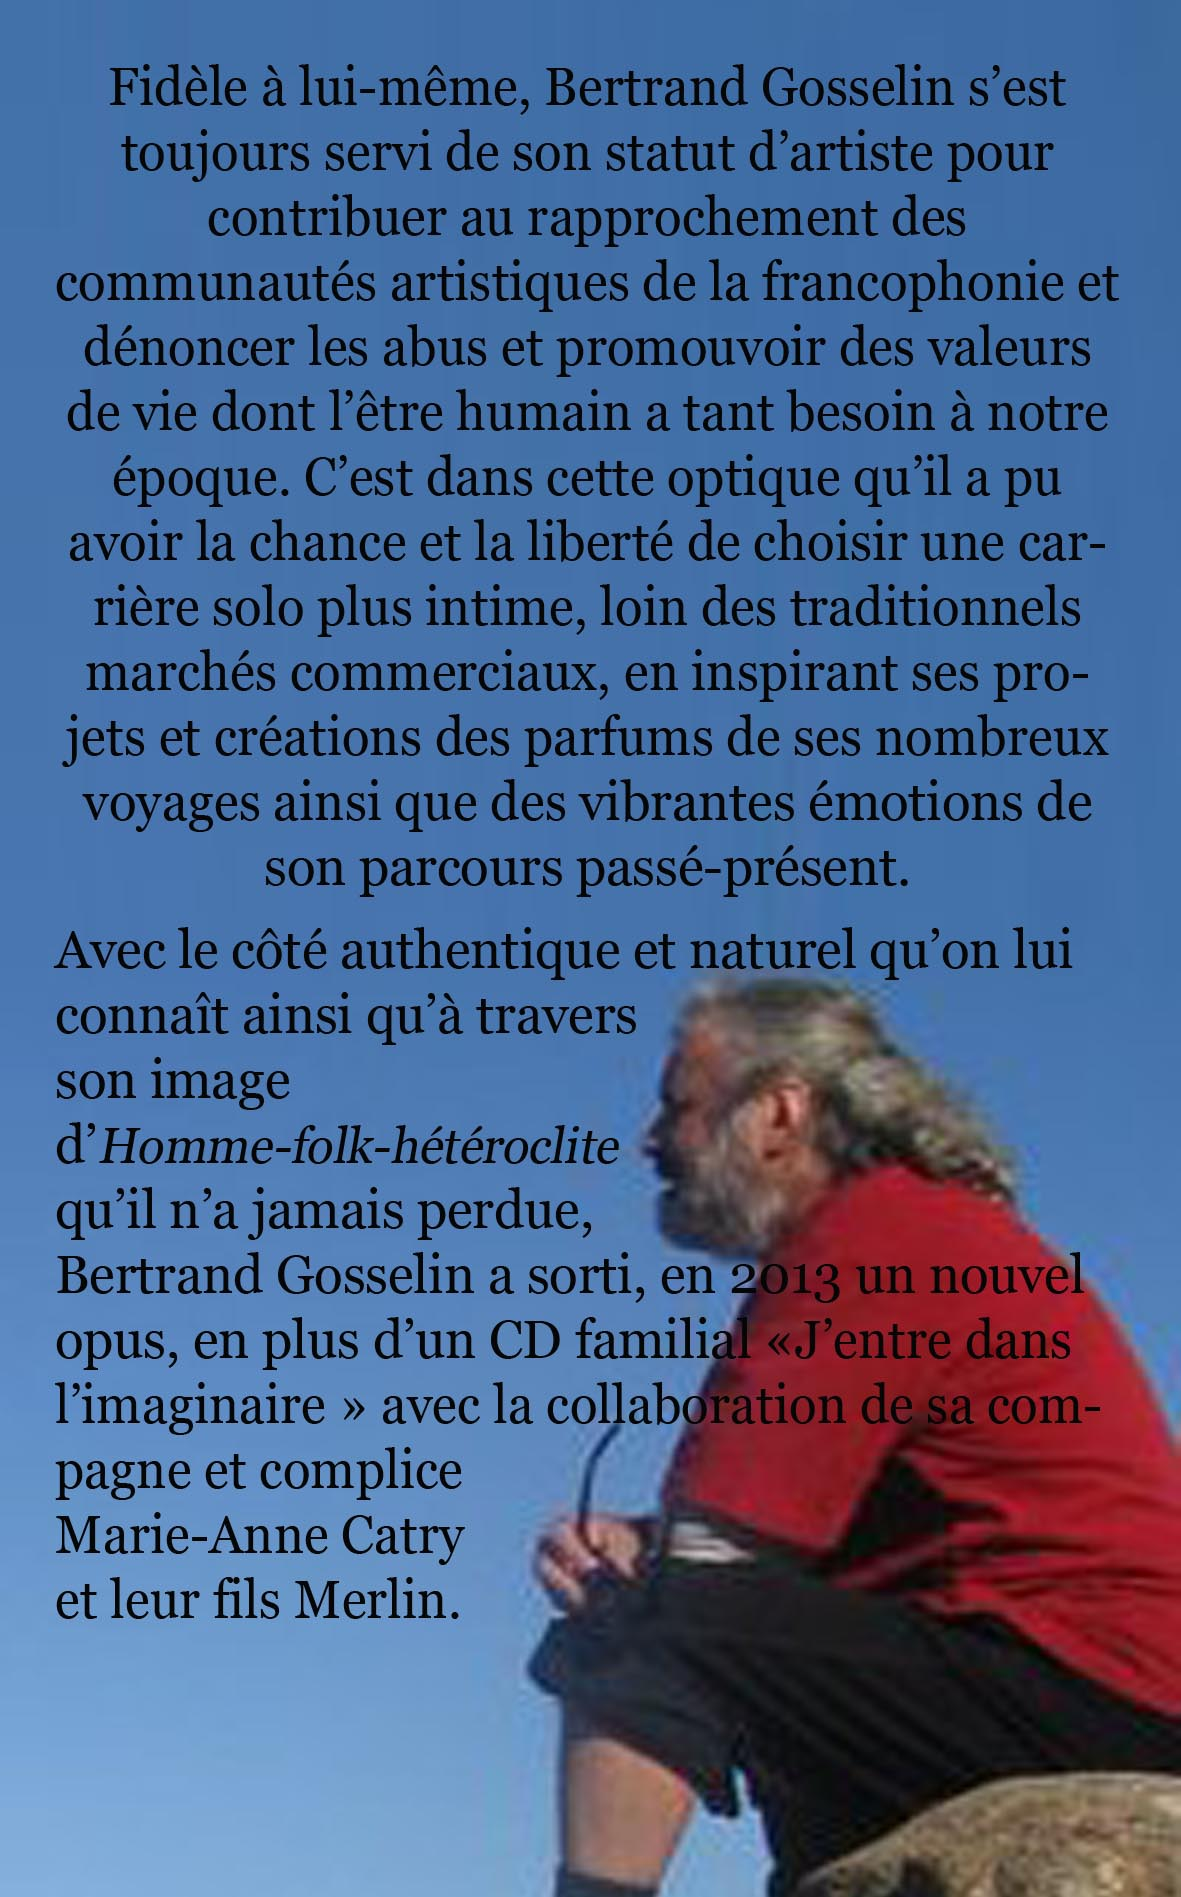 Bertrand Gosselin